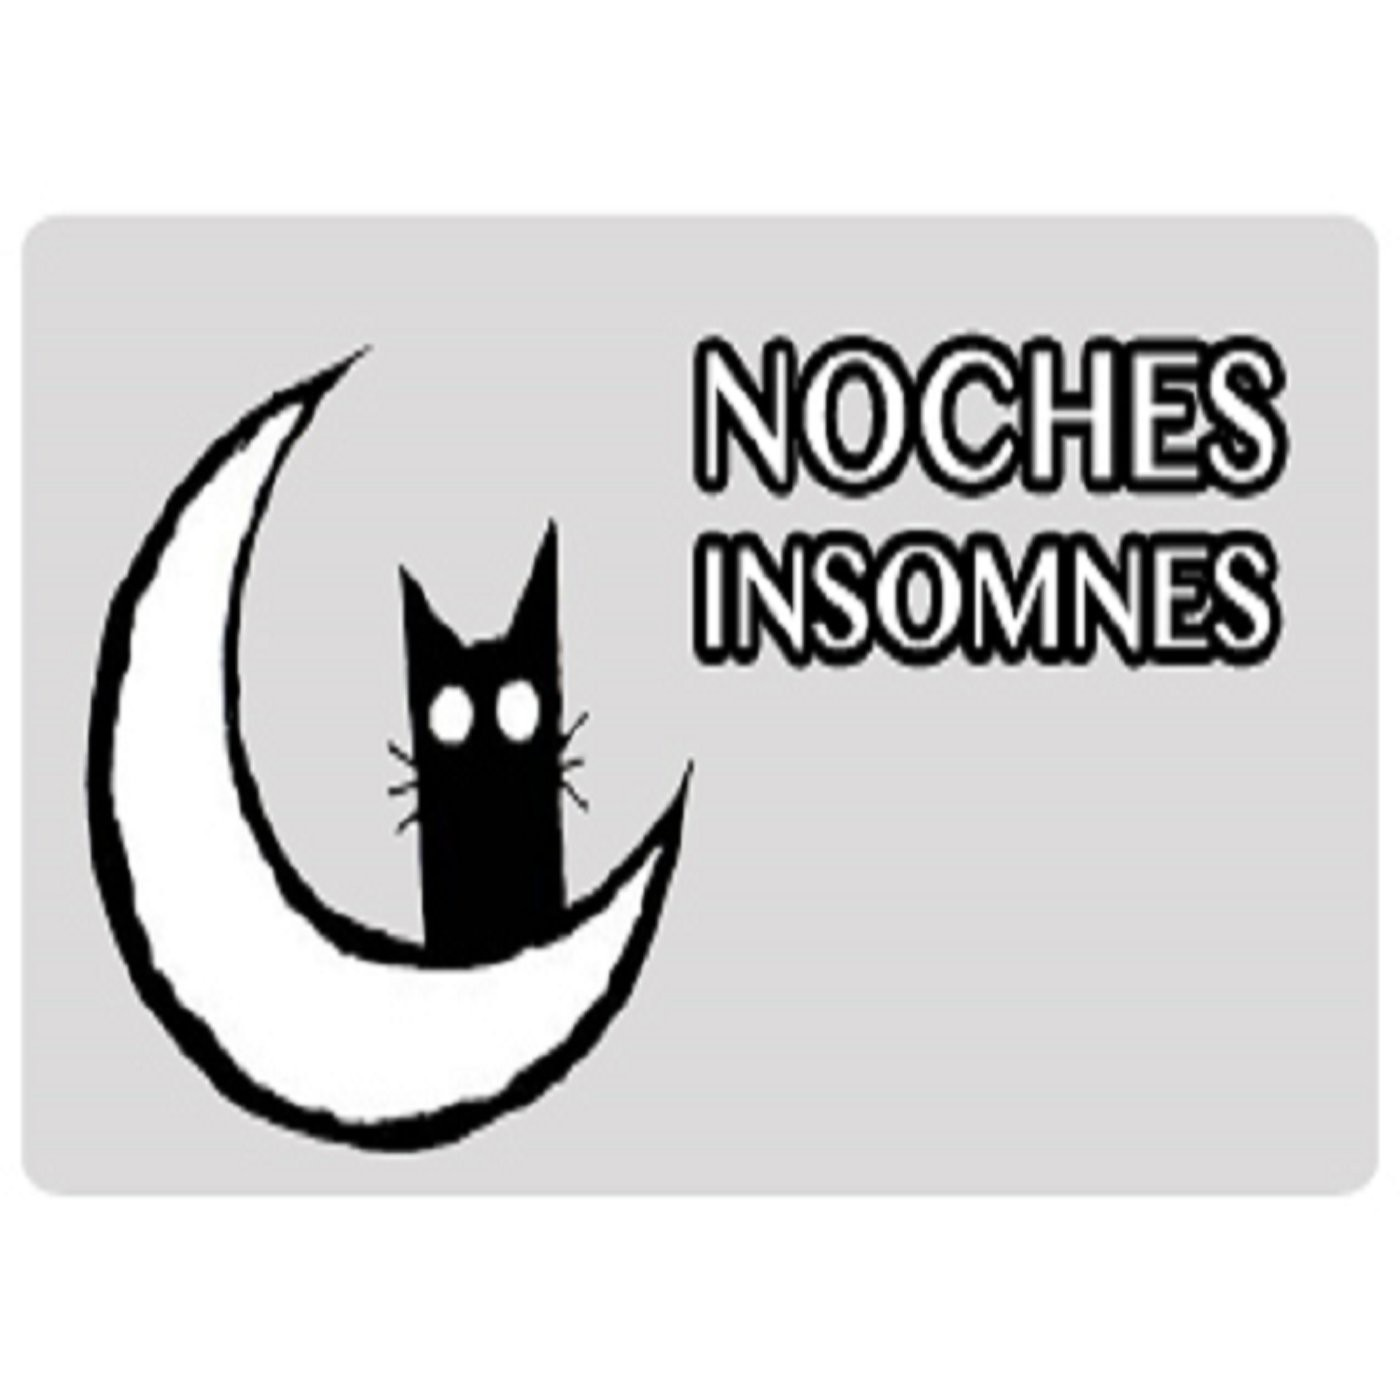 Noches insomnes